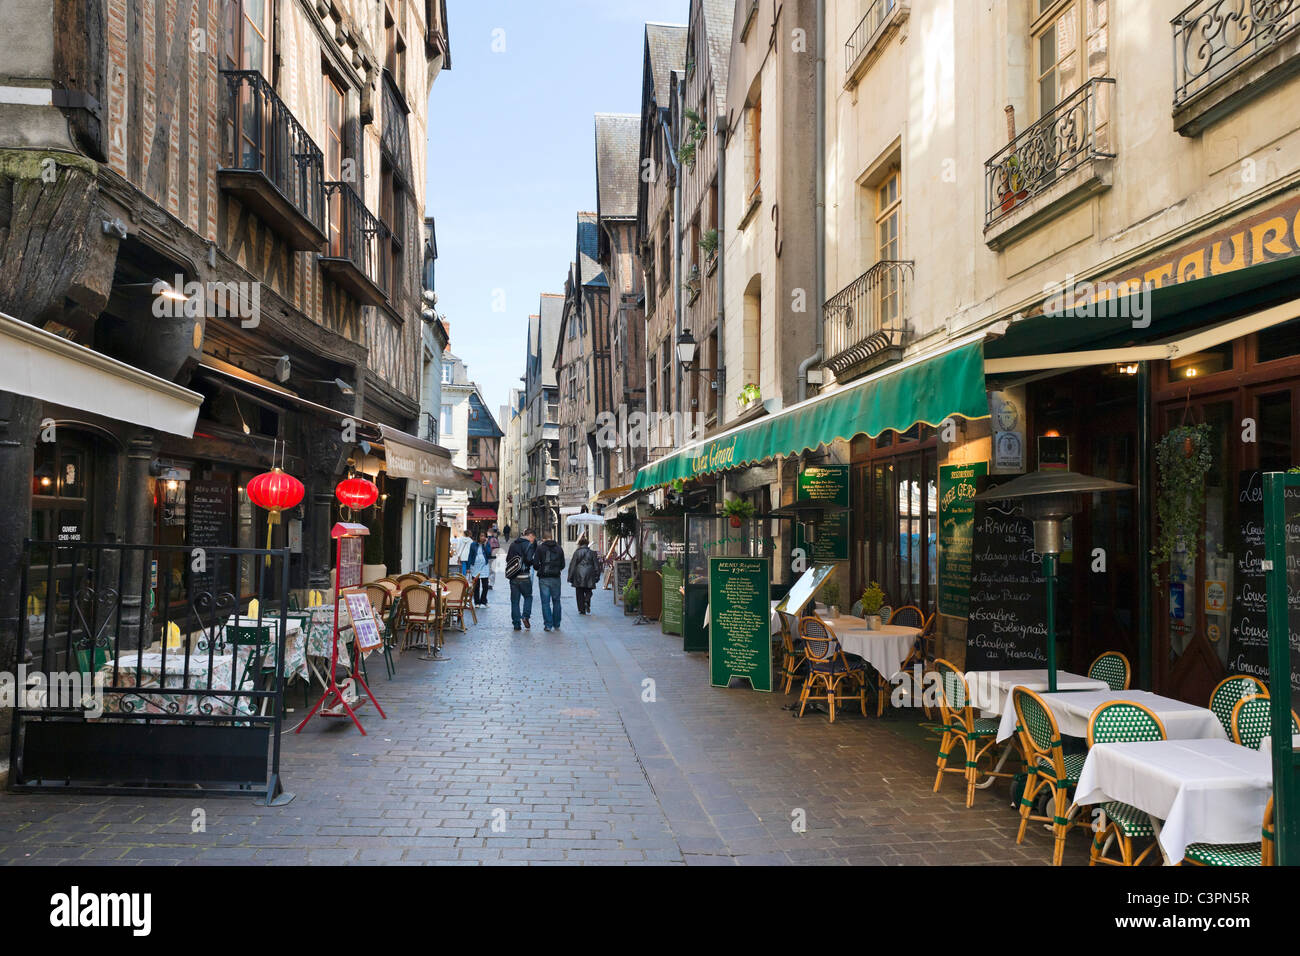 Restaurants on Rue du Grand Marche near Place Plumereau in the old quarter of the city, Tours, Indre et Loire, France - Stock Image